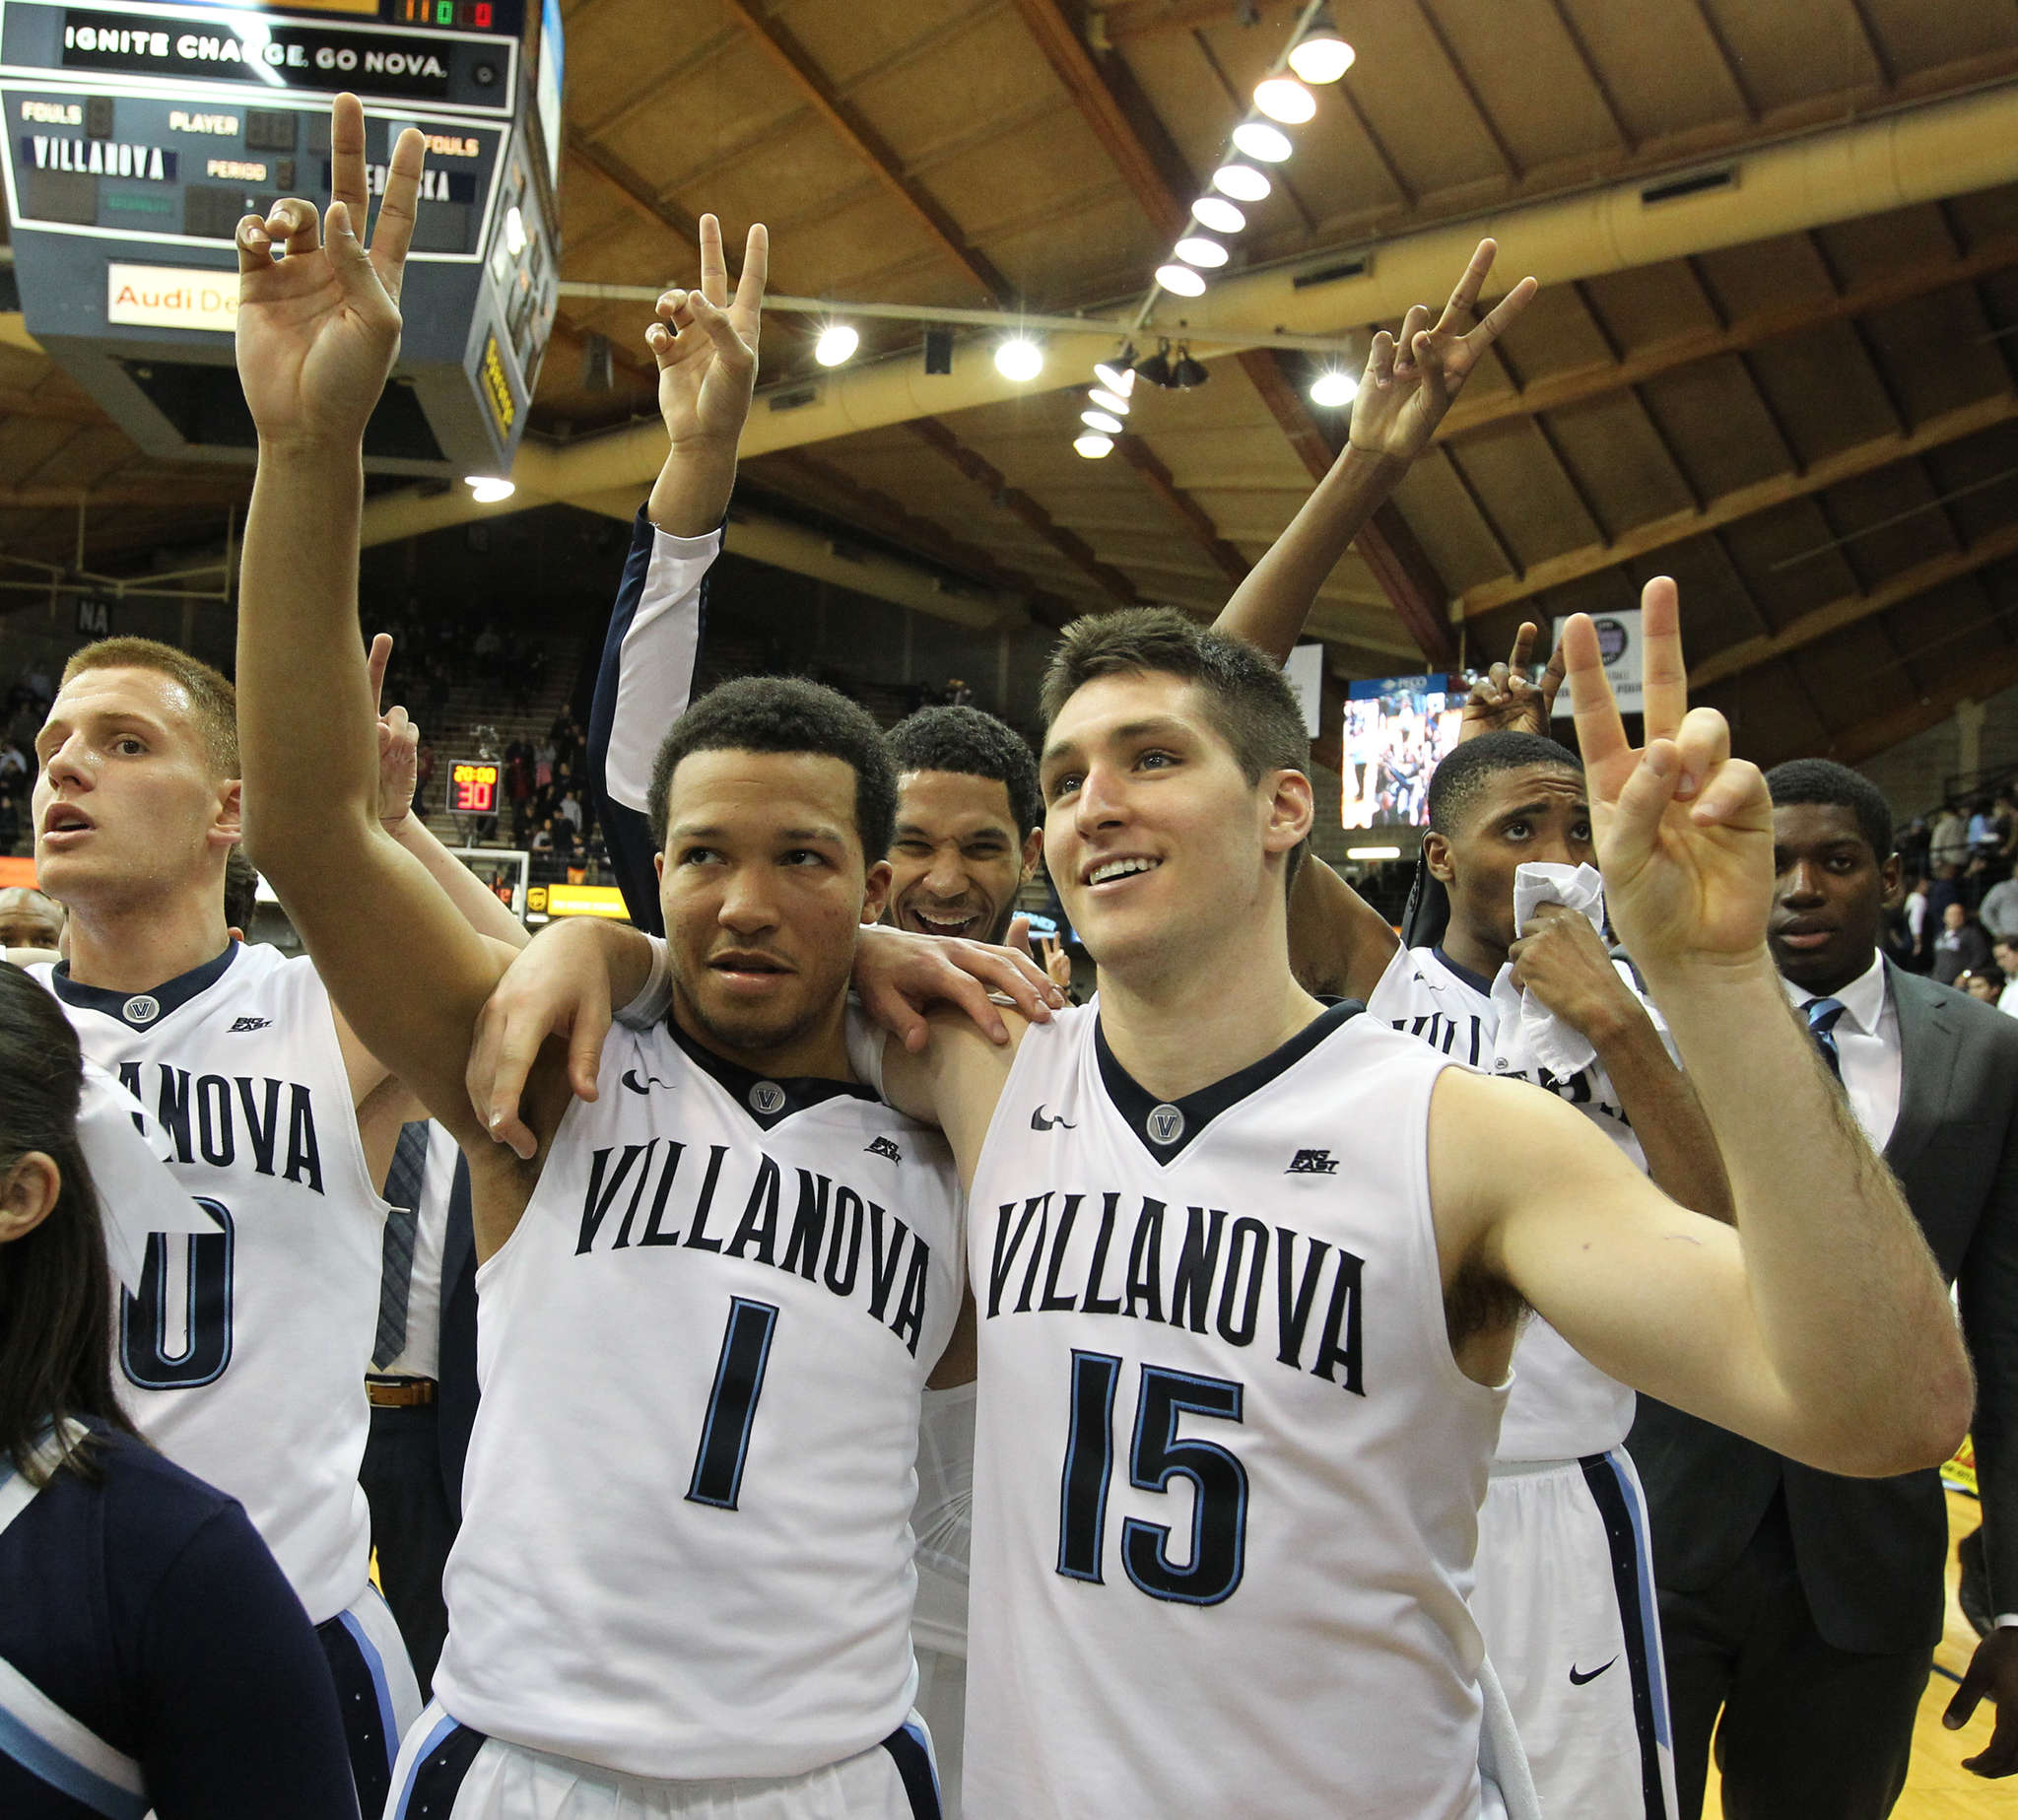 Villanova´s Jalen Brunson (left) and Ryan Arcidiacono are two of the main reasons the Wildcats are 20-3 overall, 10-1 in the Big East, and No. 1 in the country.